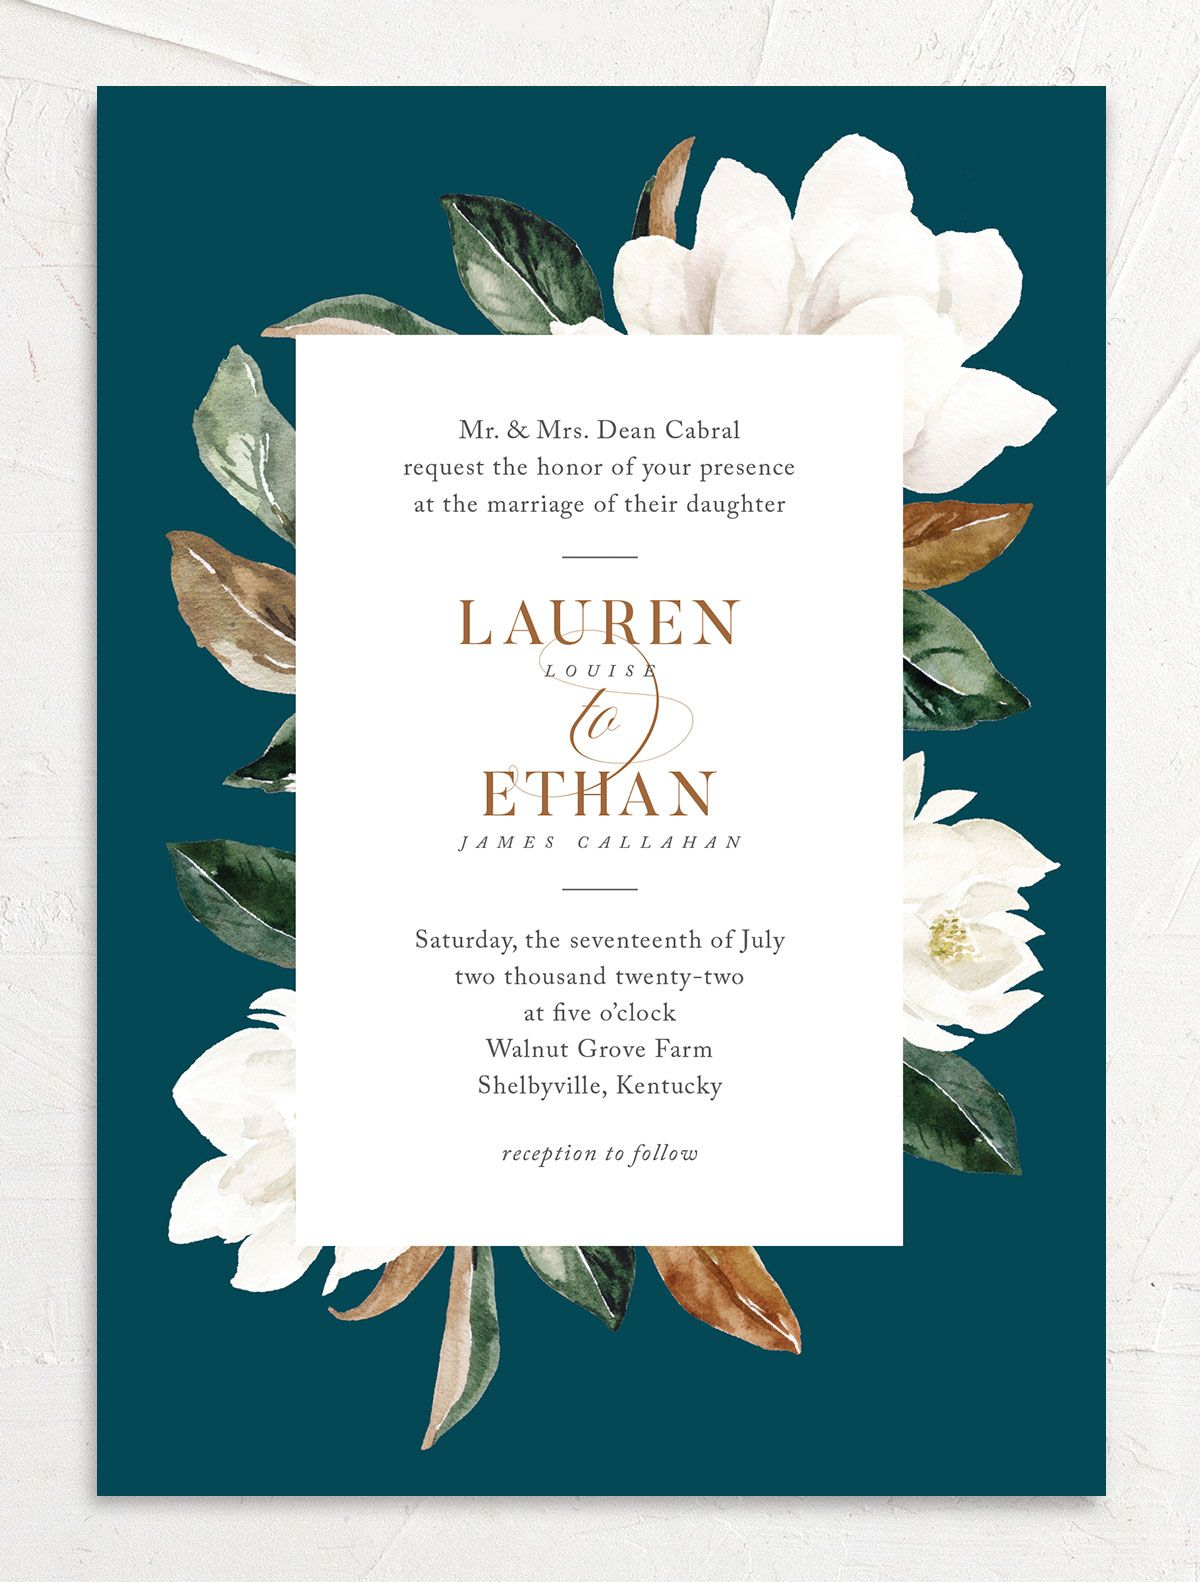 painted magnolia wedding invitation in teal